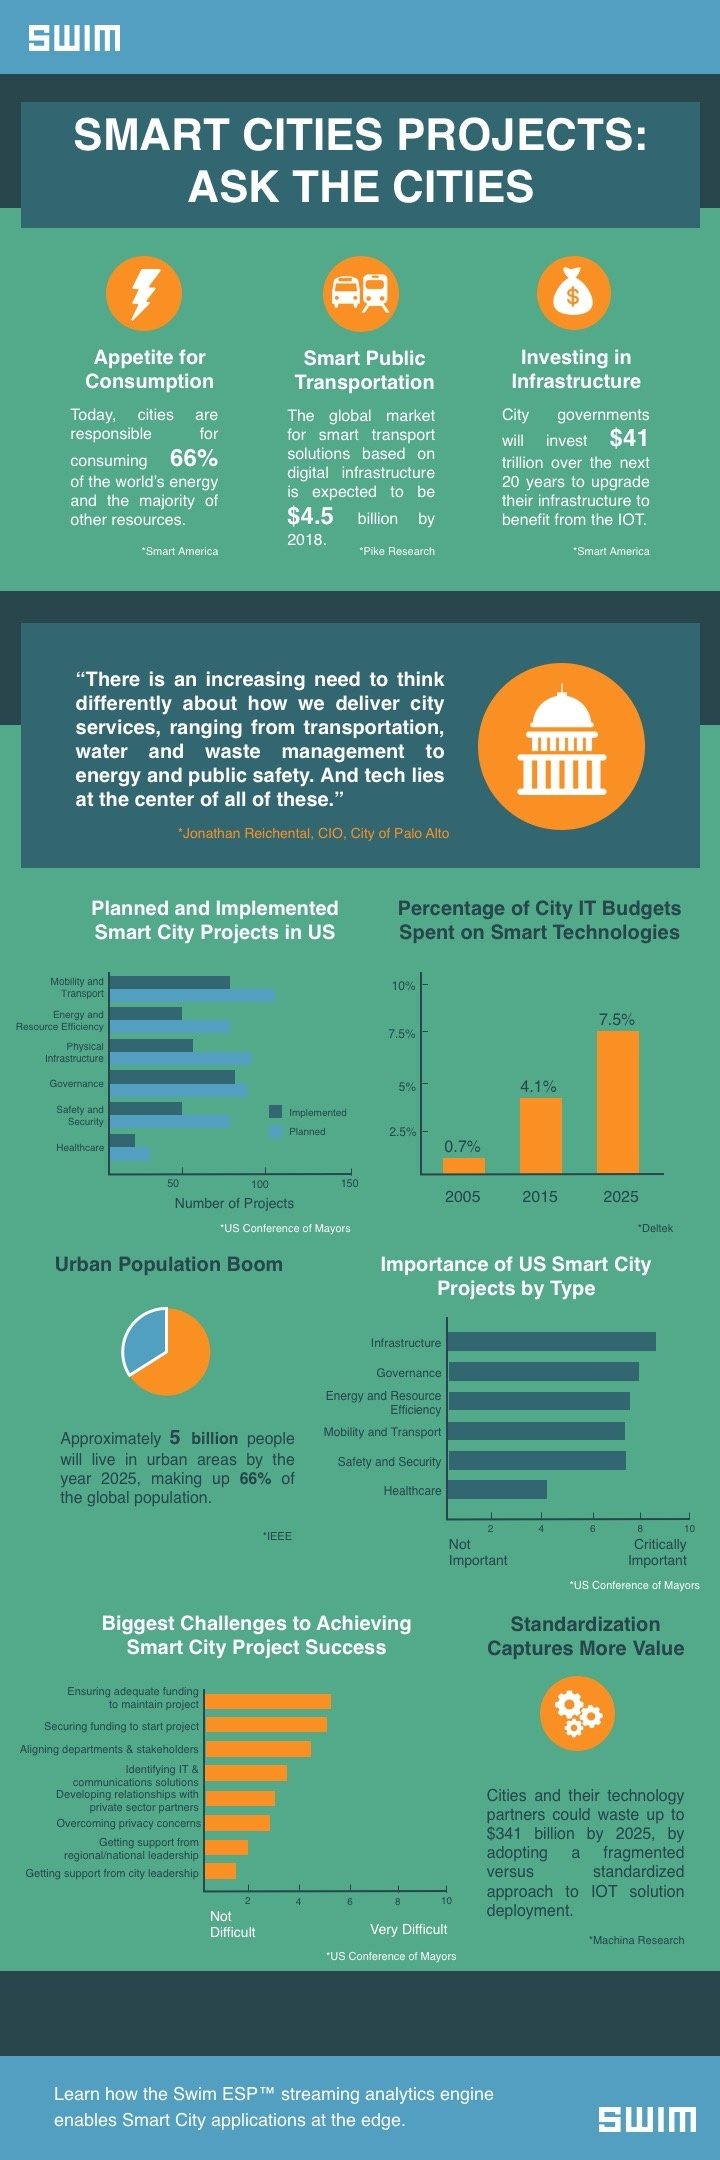 Swim_Ask the Cities_Smart Cities Projects_Infographic